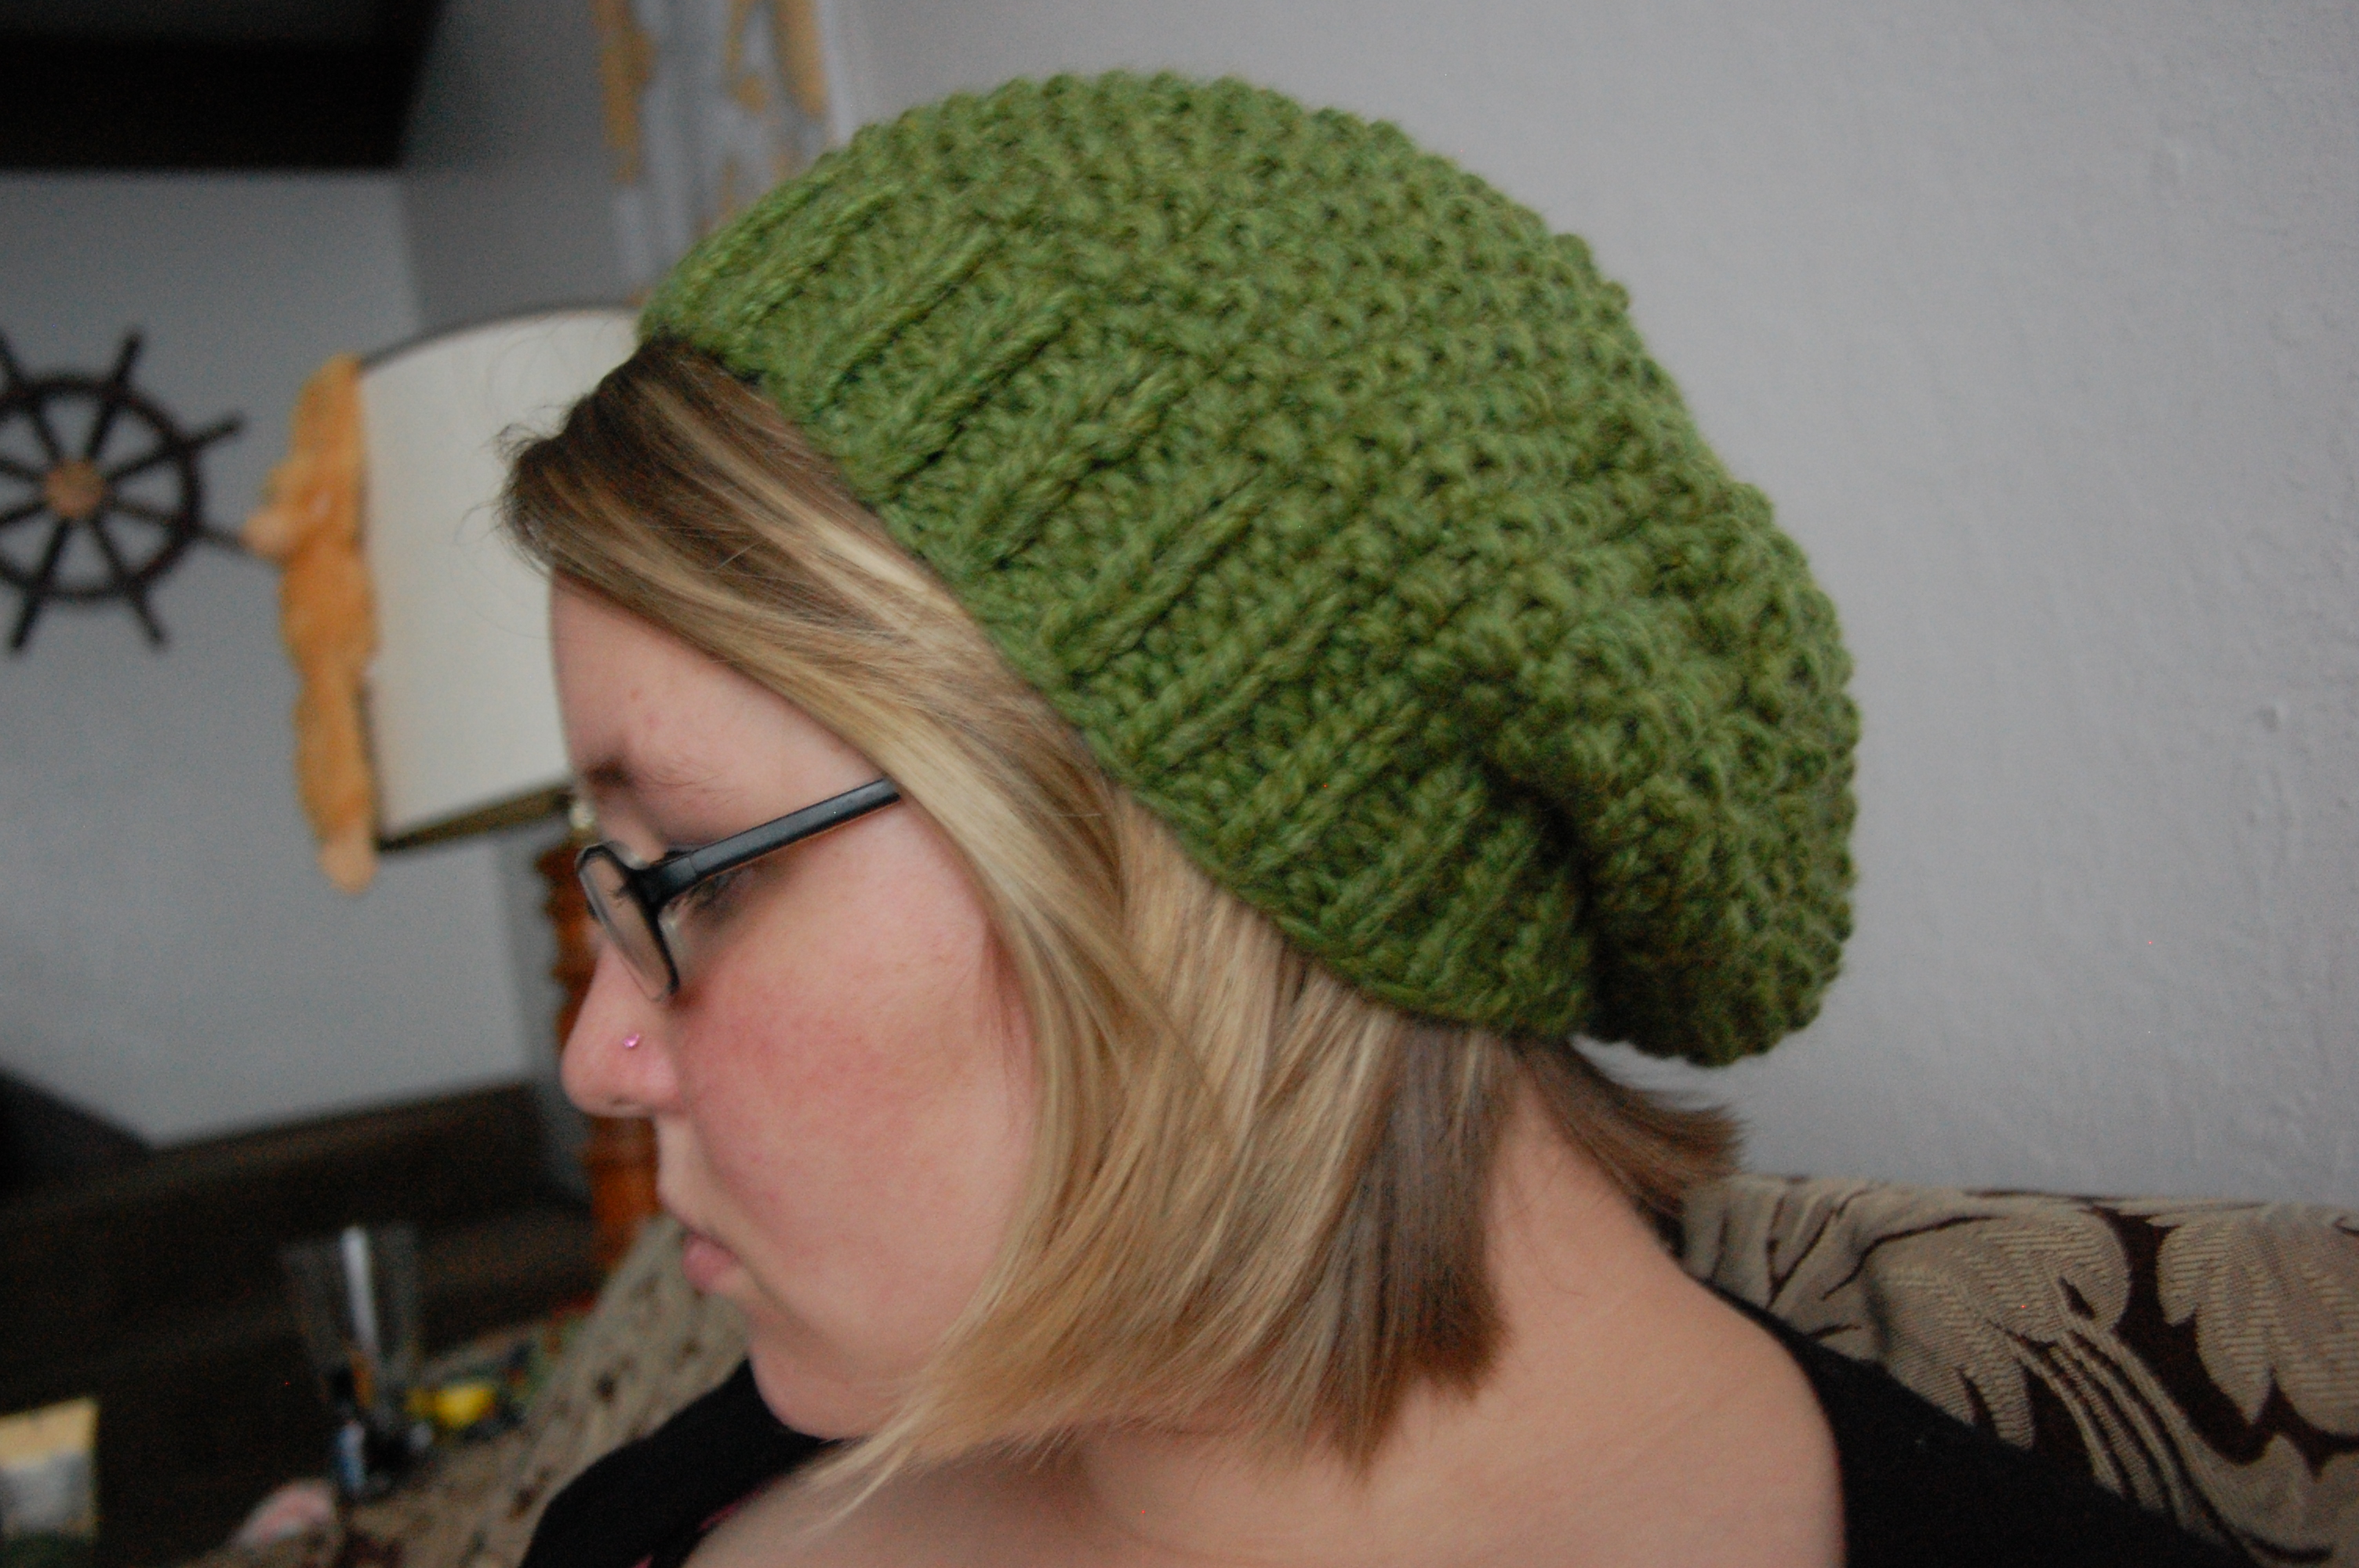 Lemon Grass Hat! Knittybutton